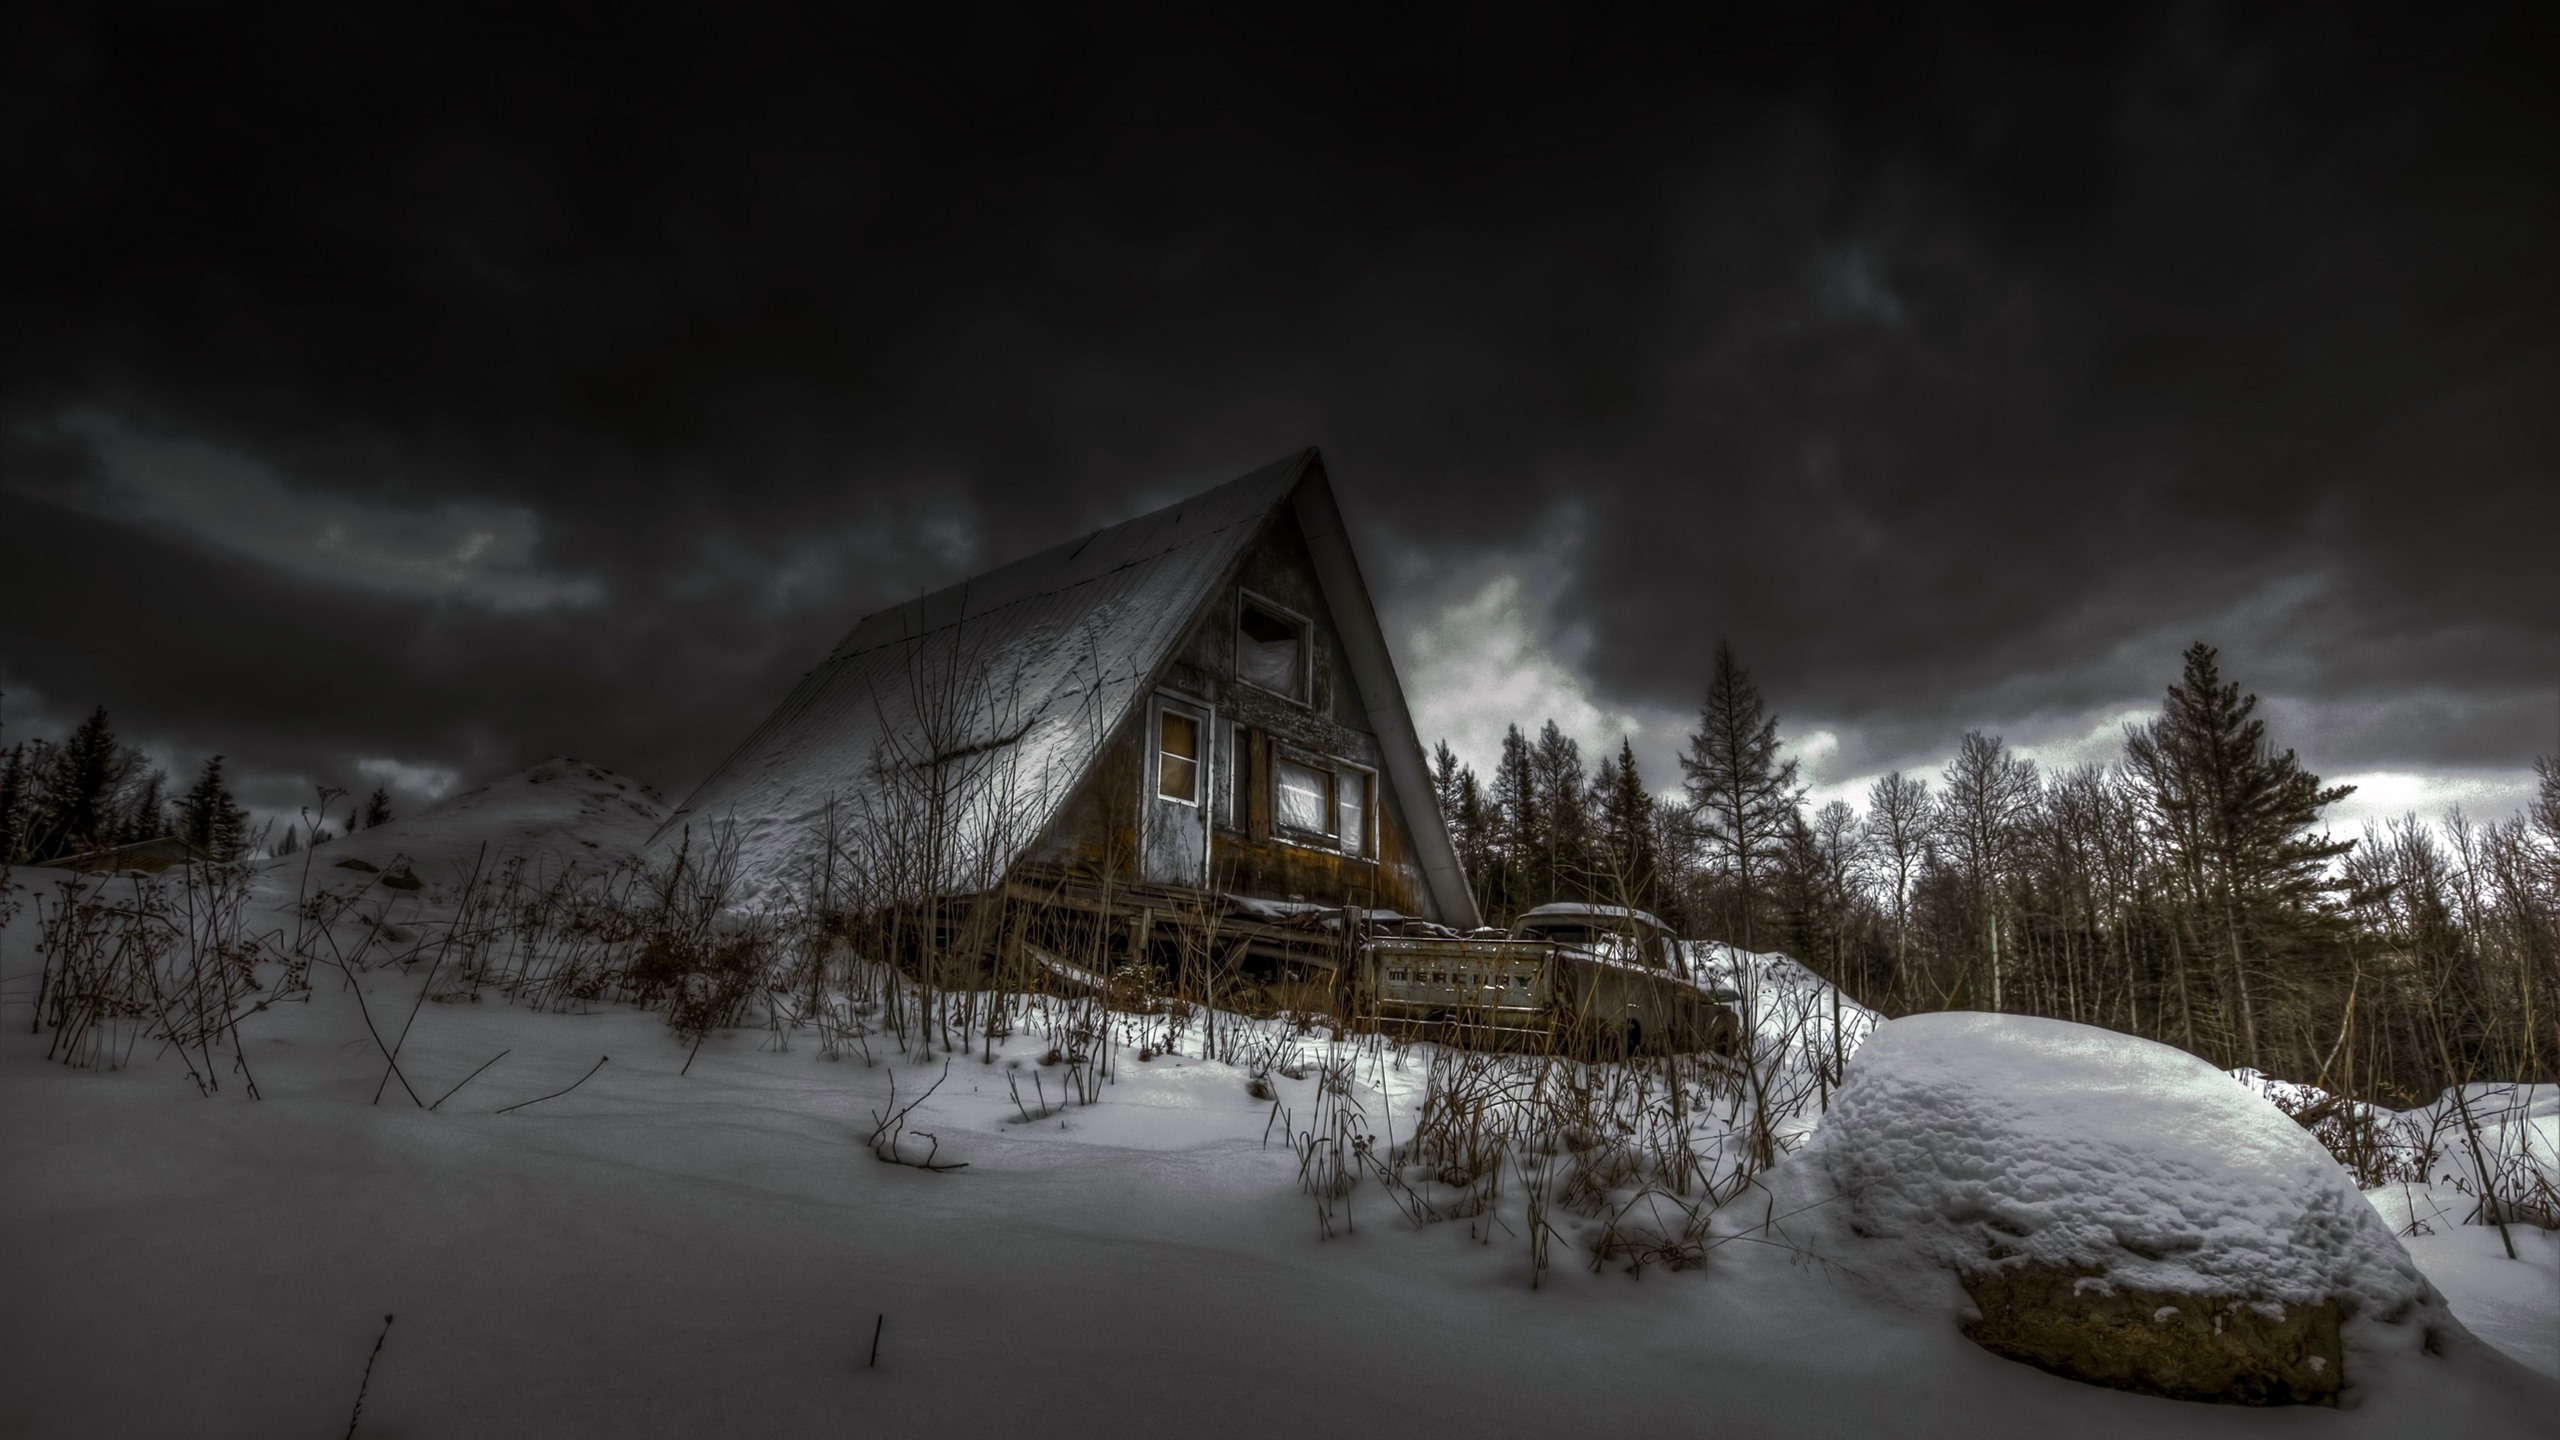 Wallpaper Wood House Trees Snow Clouds Winter 2560x1600 Hd